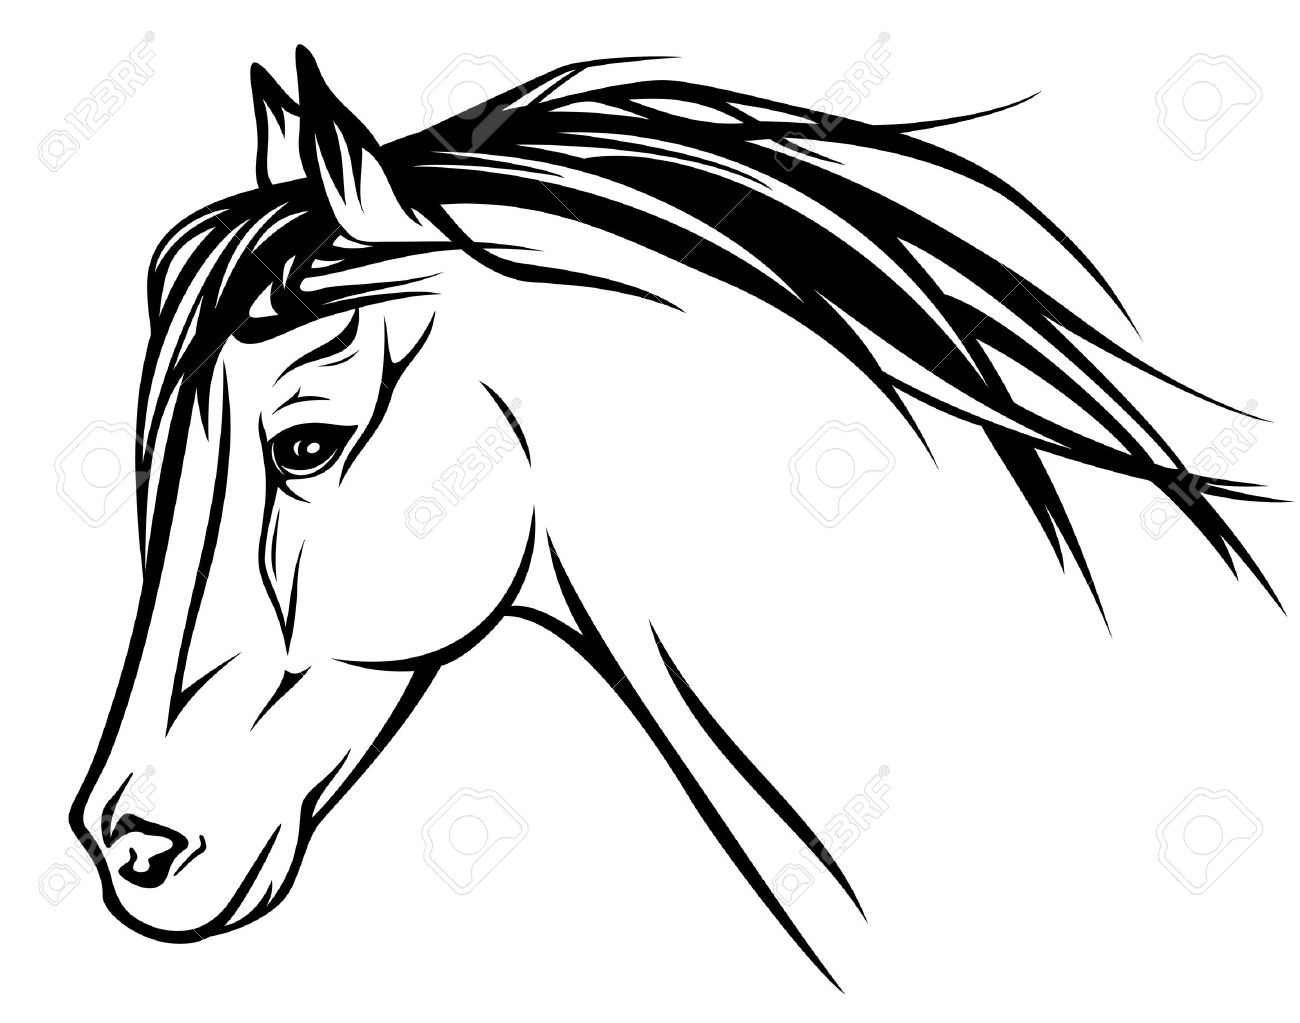 Black And White Horse Drawing At Getdrawings